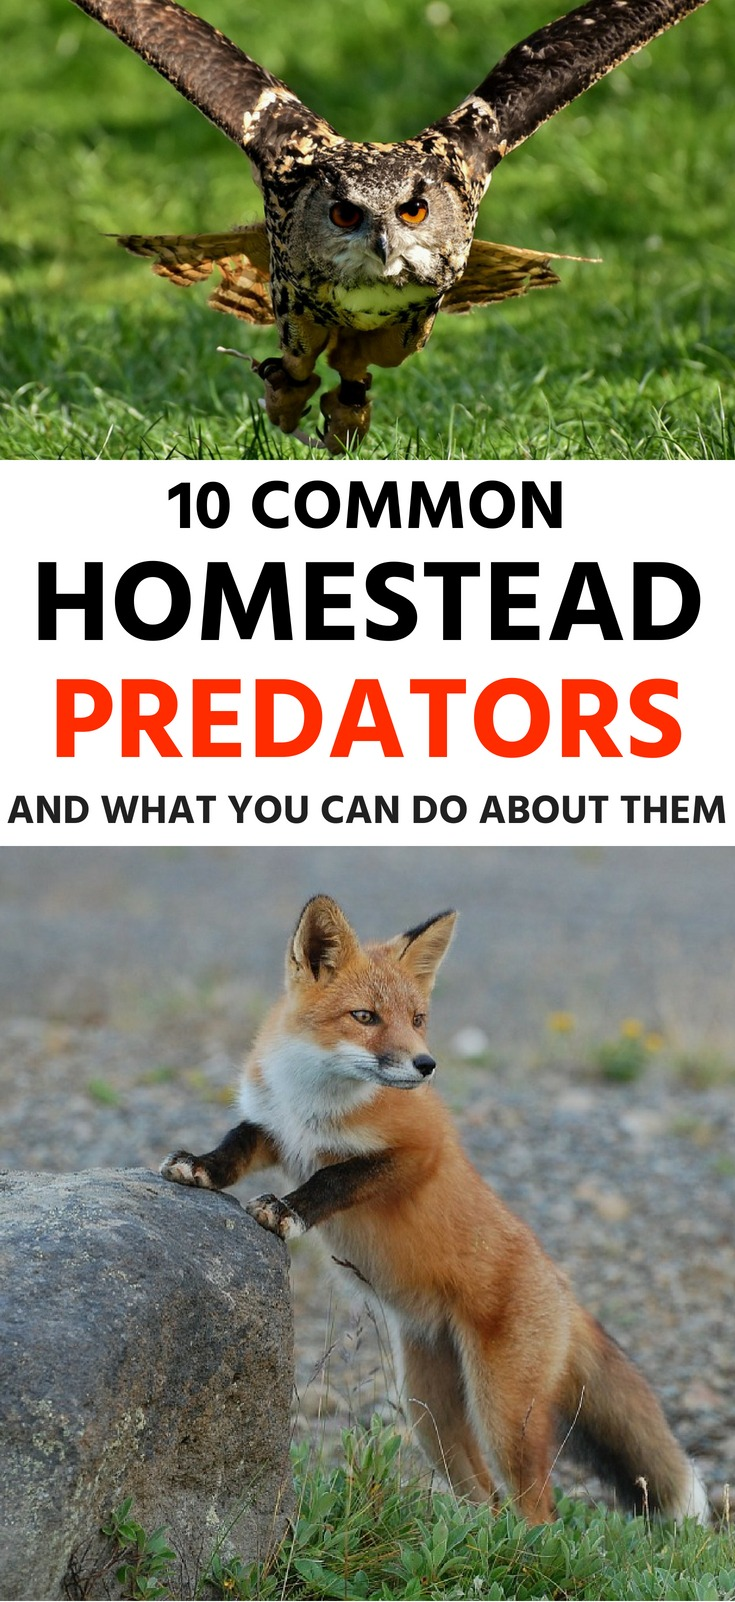 10-Common-Homestead-Predators